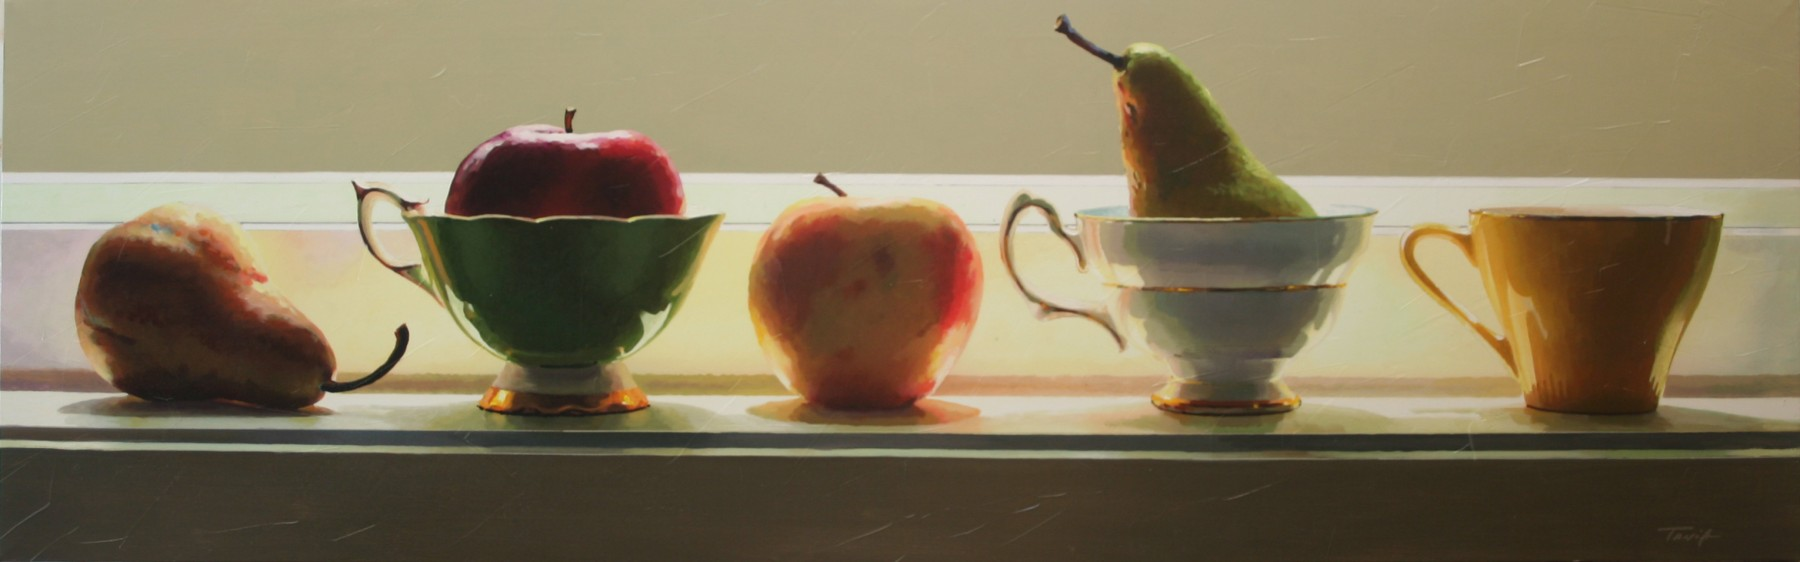 GlowingCups&Fruits_19x60